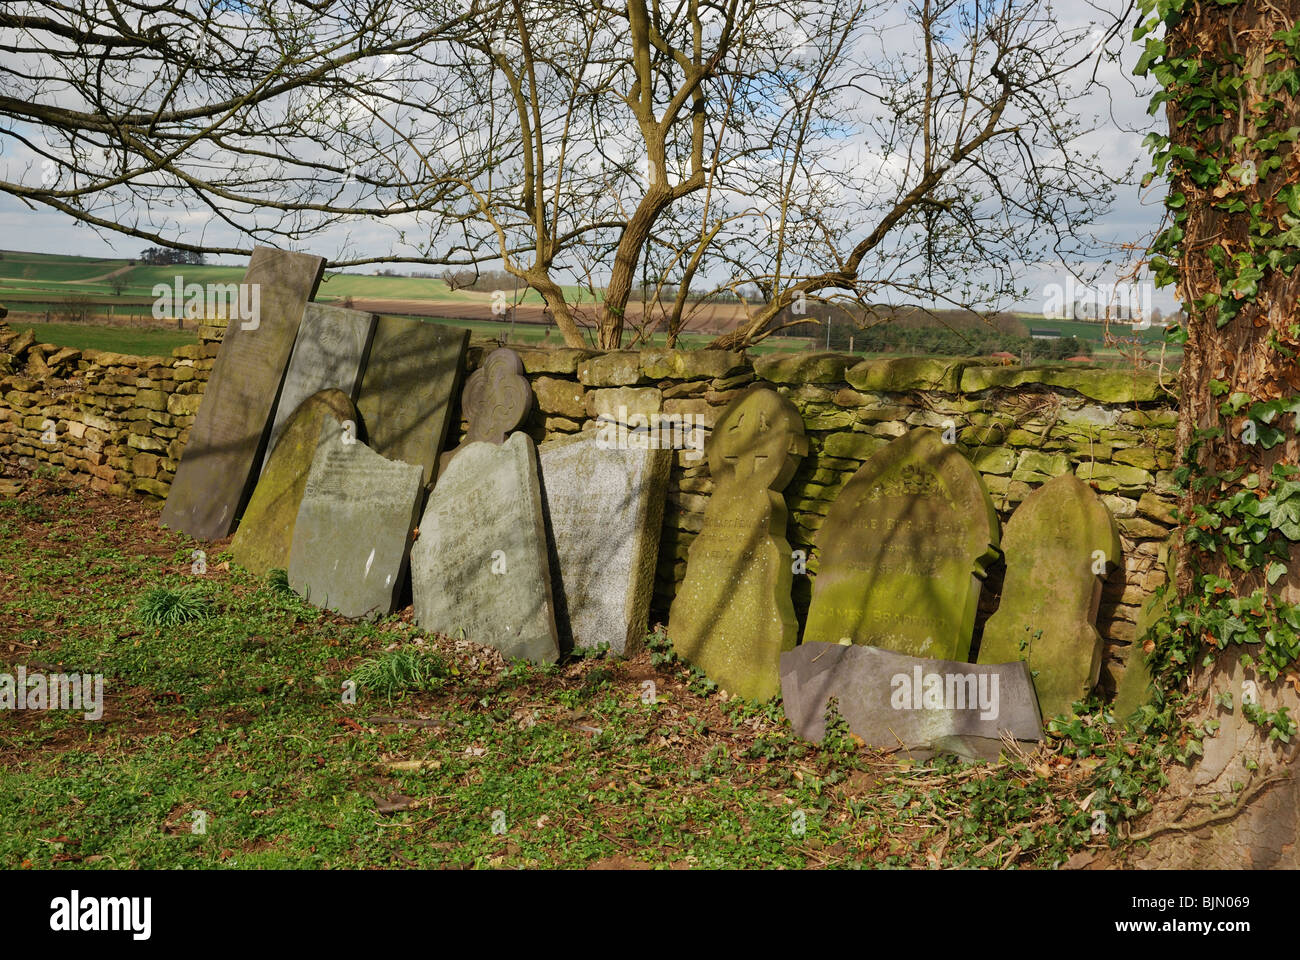 Discarded gravestones at St Wilfrid's church, Honington, Lincolnshire, England. - Stock Image